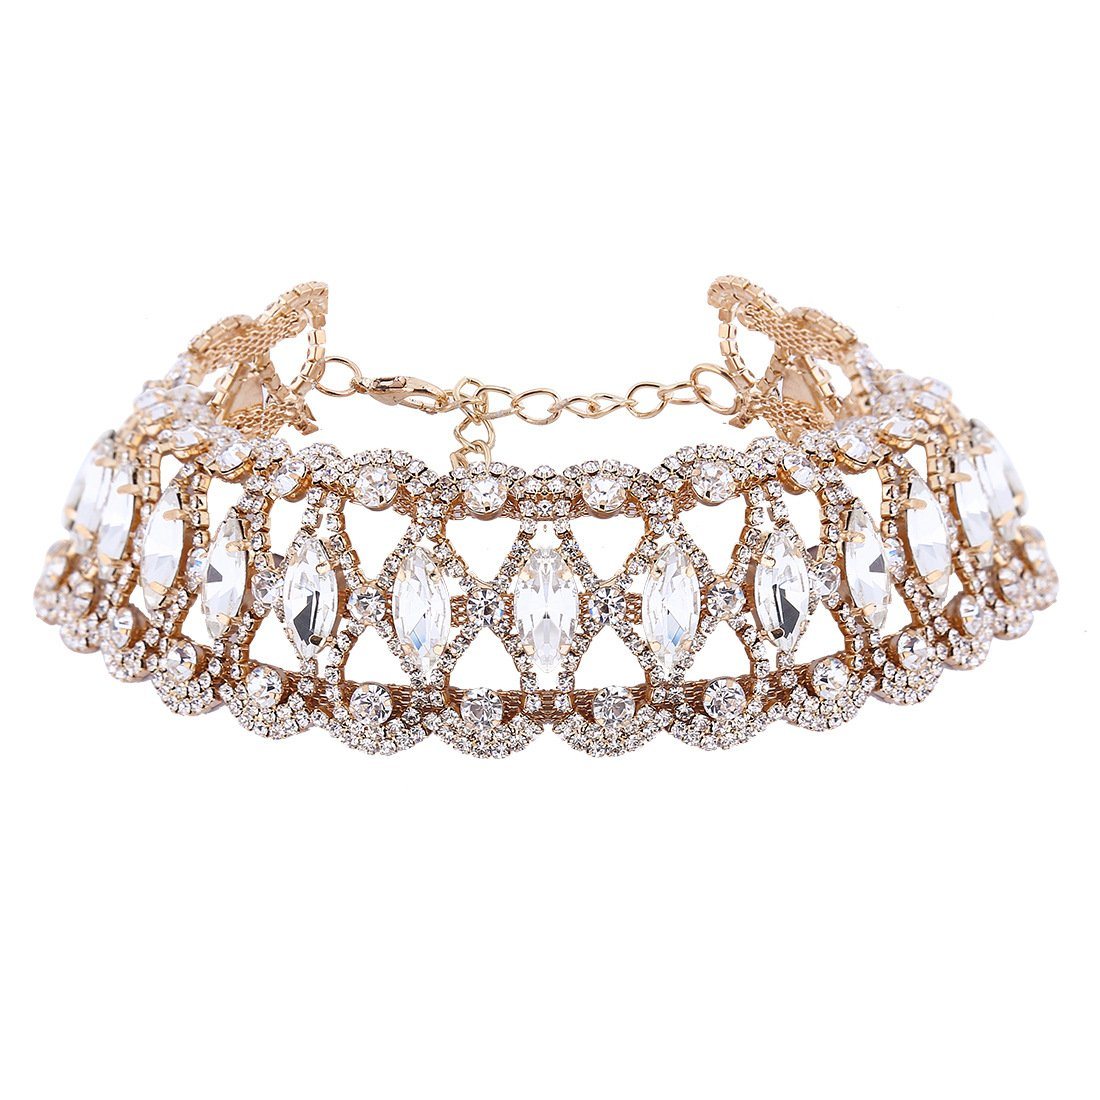 MengPa Rhinestone Choker Necklace for Women Fashion Collar Wedding Jewelry Gold